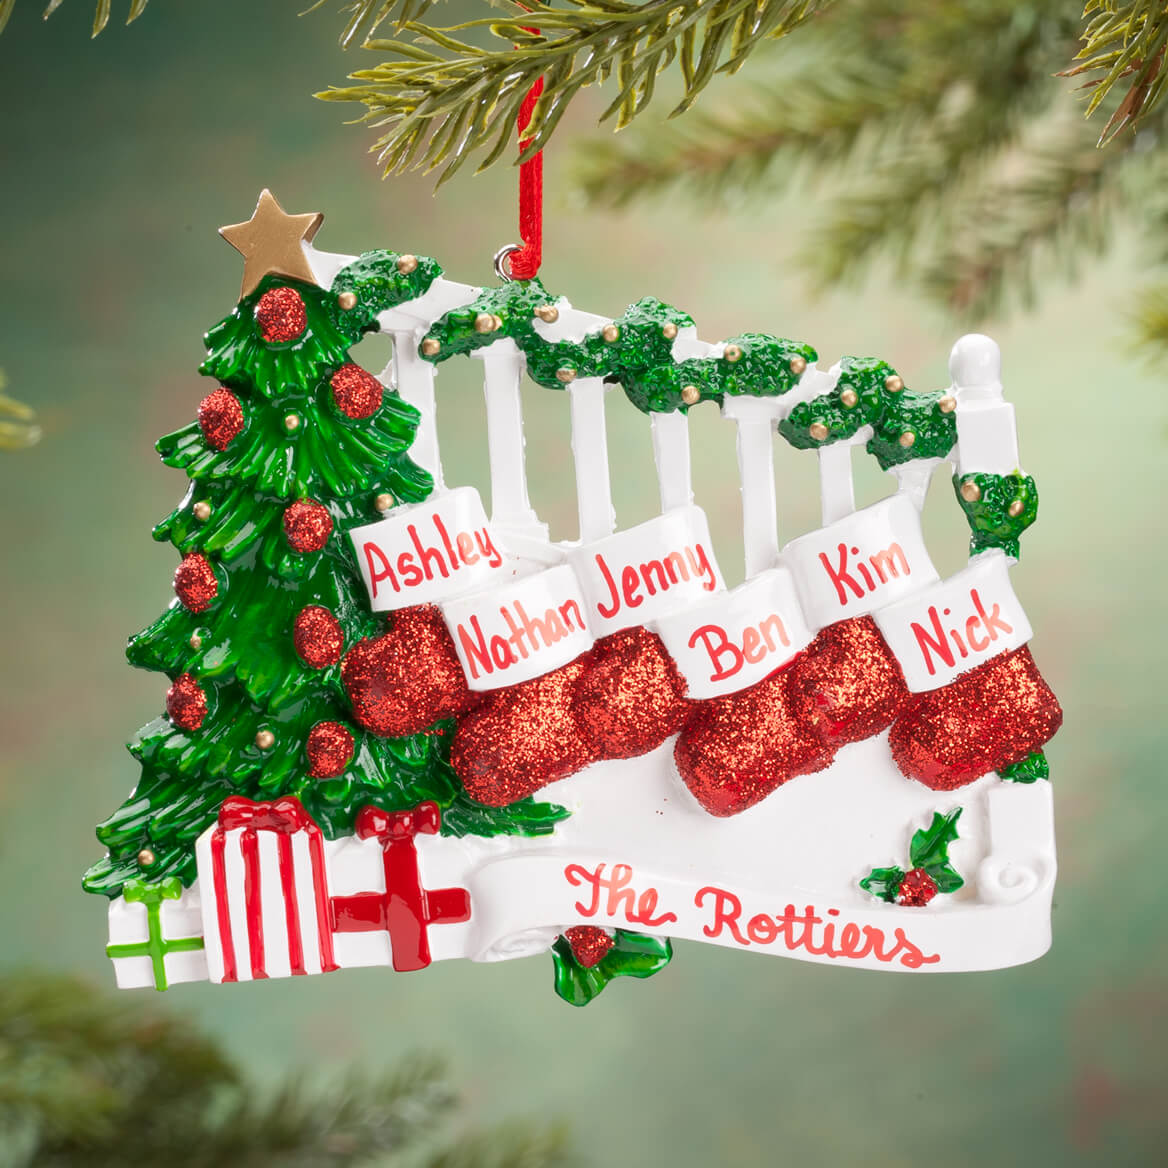 Personalized Stockings on Stairs Family Ornament-360614